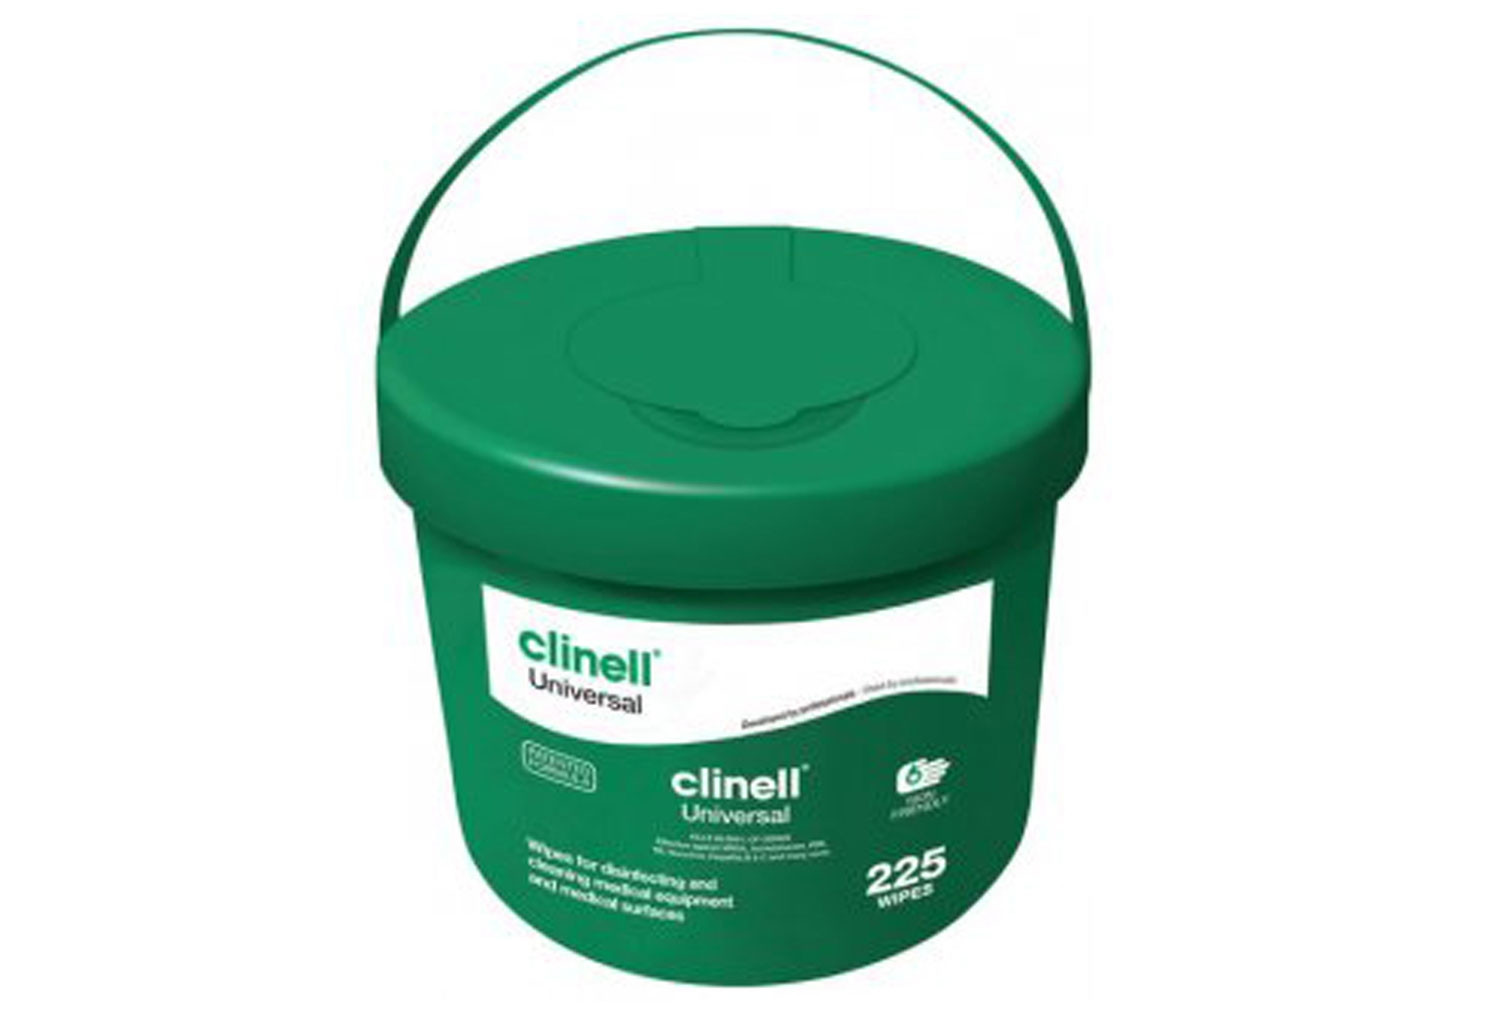 Bucket Of Clinell Universal Wipes (225 Wipes) - NHS Approved NHSSC VJT190